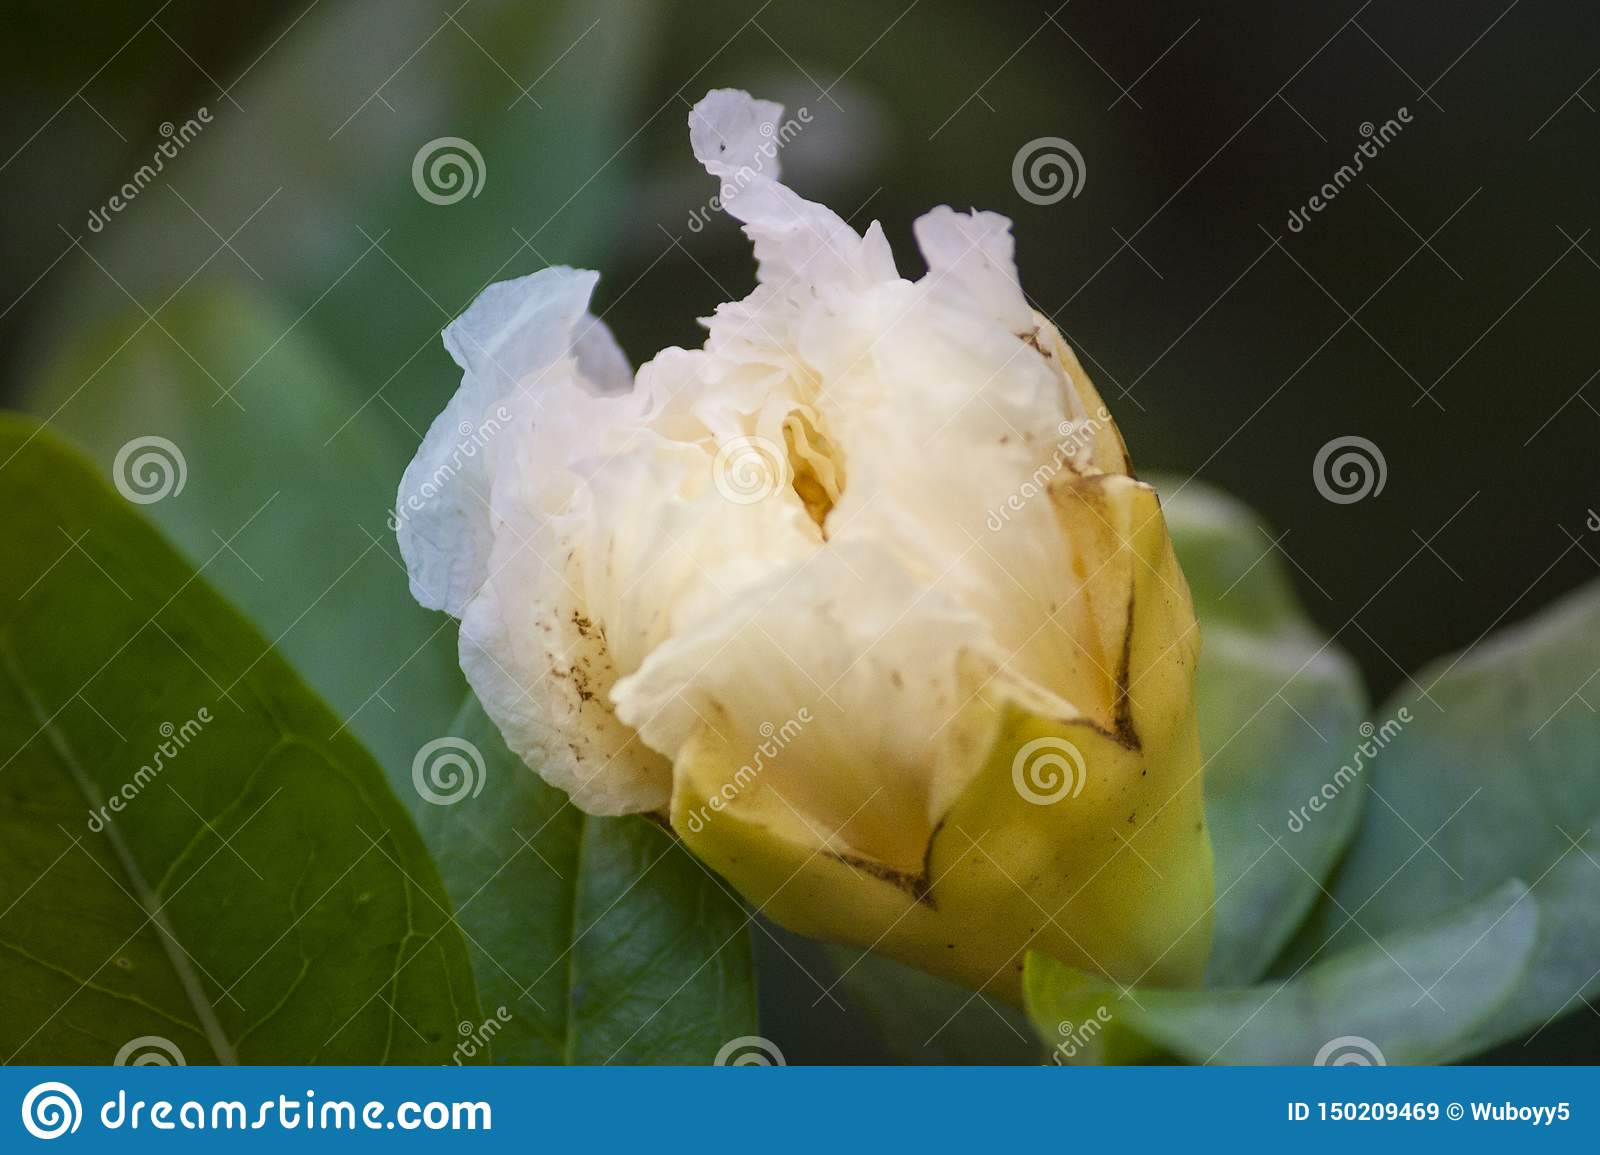 White flowers, translucent white flowers, hd flowers